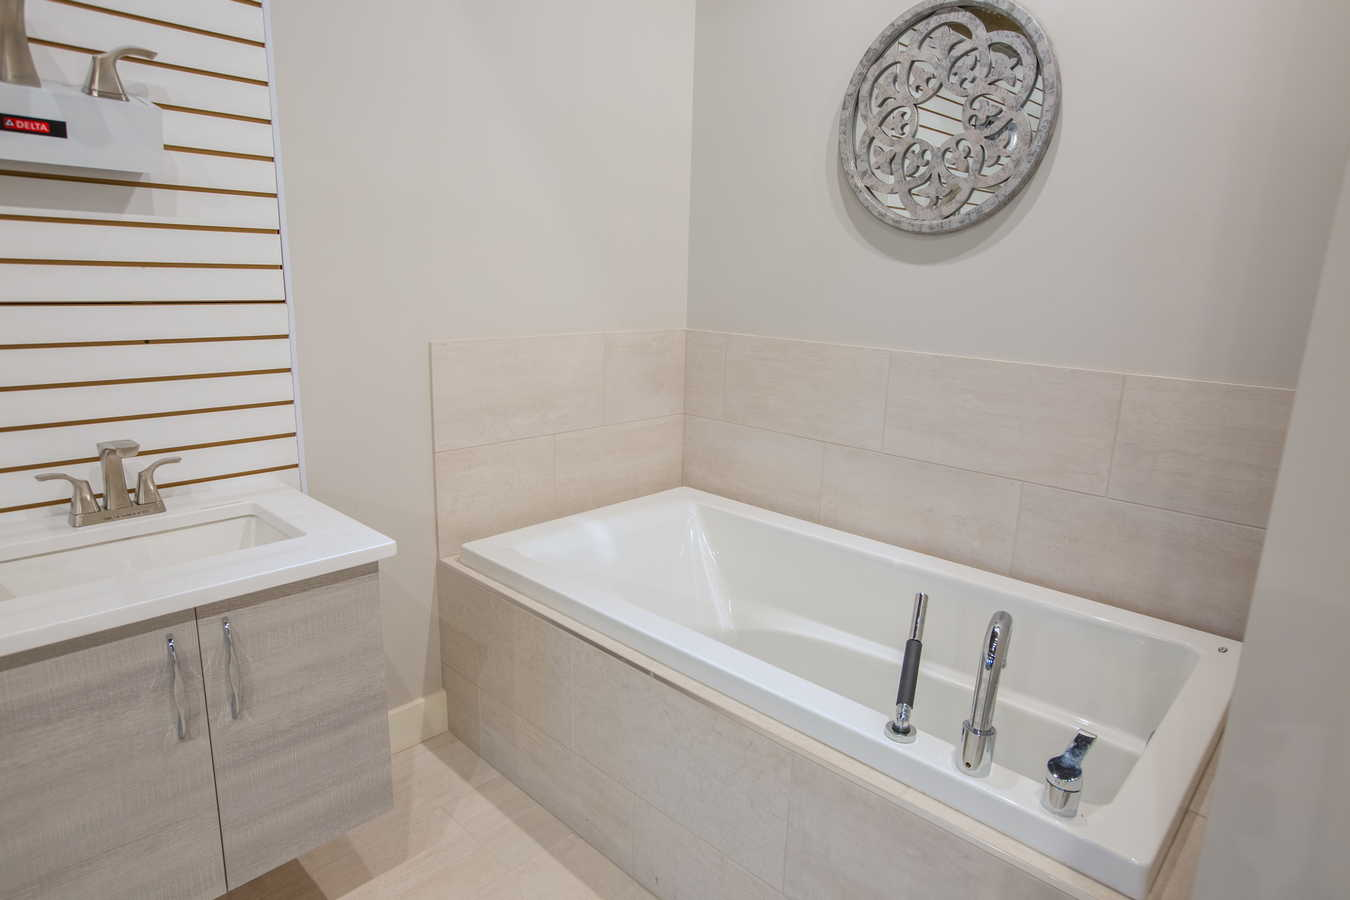 in com austin bathtub gallery bathroom guinevere photos supply showroom new tx toto josco htsrec faucets of tub